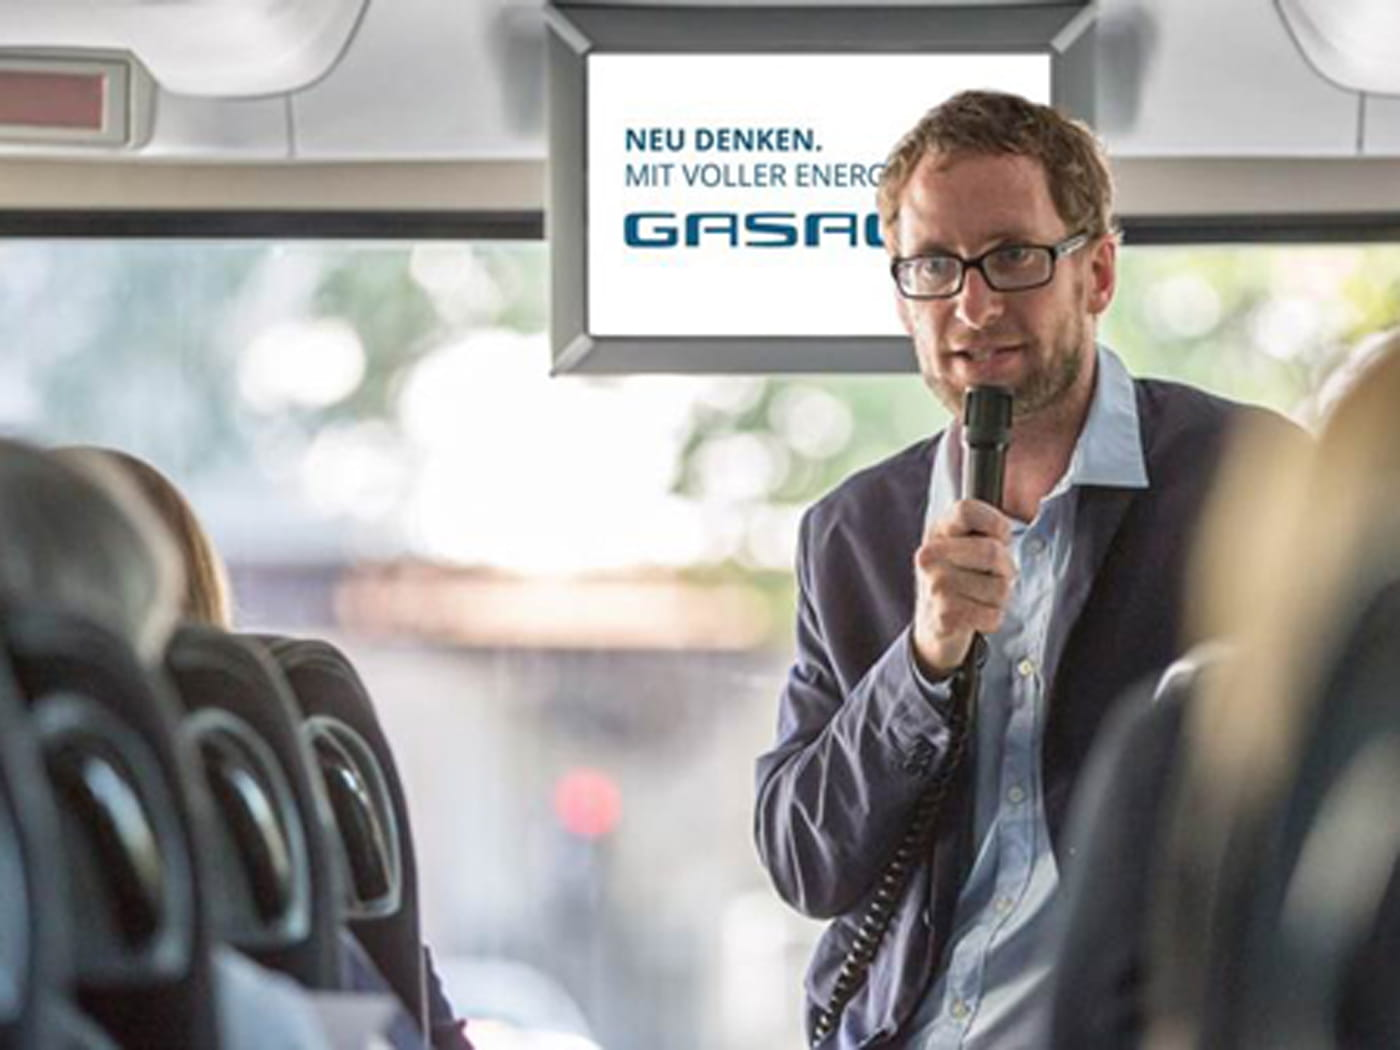 Related-Content-Teaser-1400x1050-170Jahre-GASAG-Videobustour